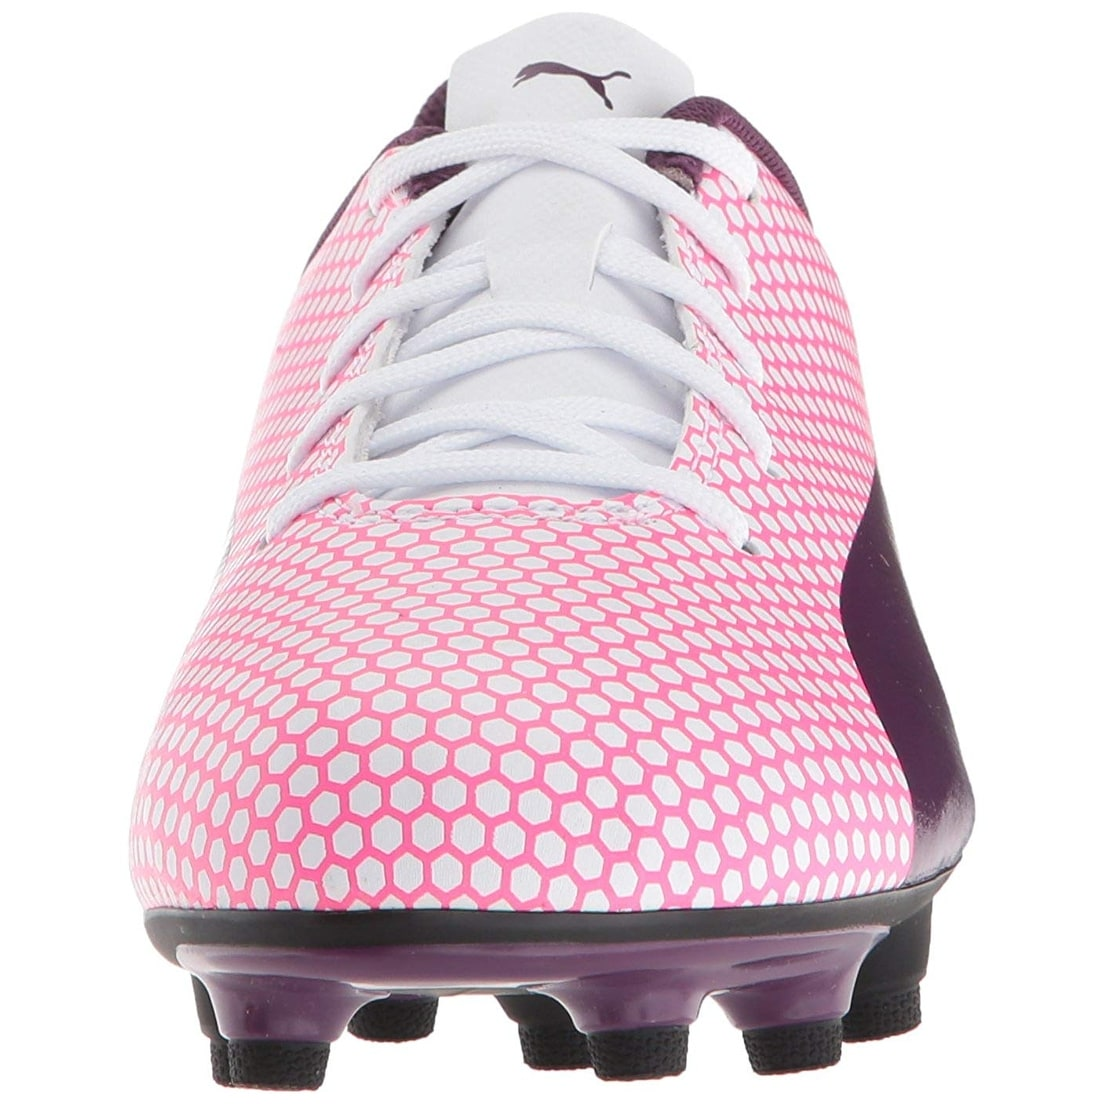 fc94370ec Shop Kids Puma Girls Spirit FG Jr Low Top Lace Up Soccer Sneaker - Free  Shipping On Orders Over  45 - Overstock - 25681102